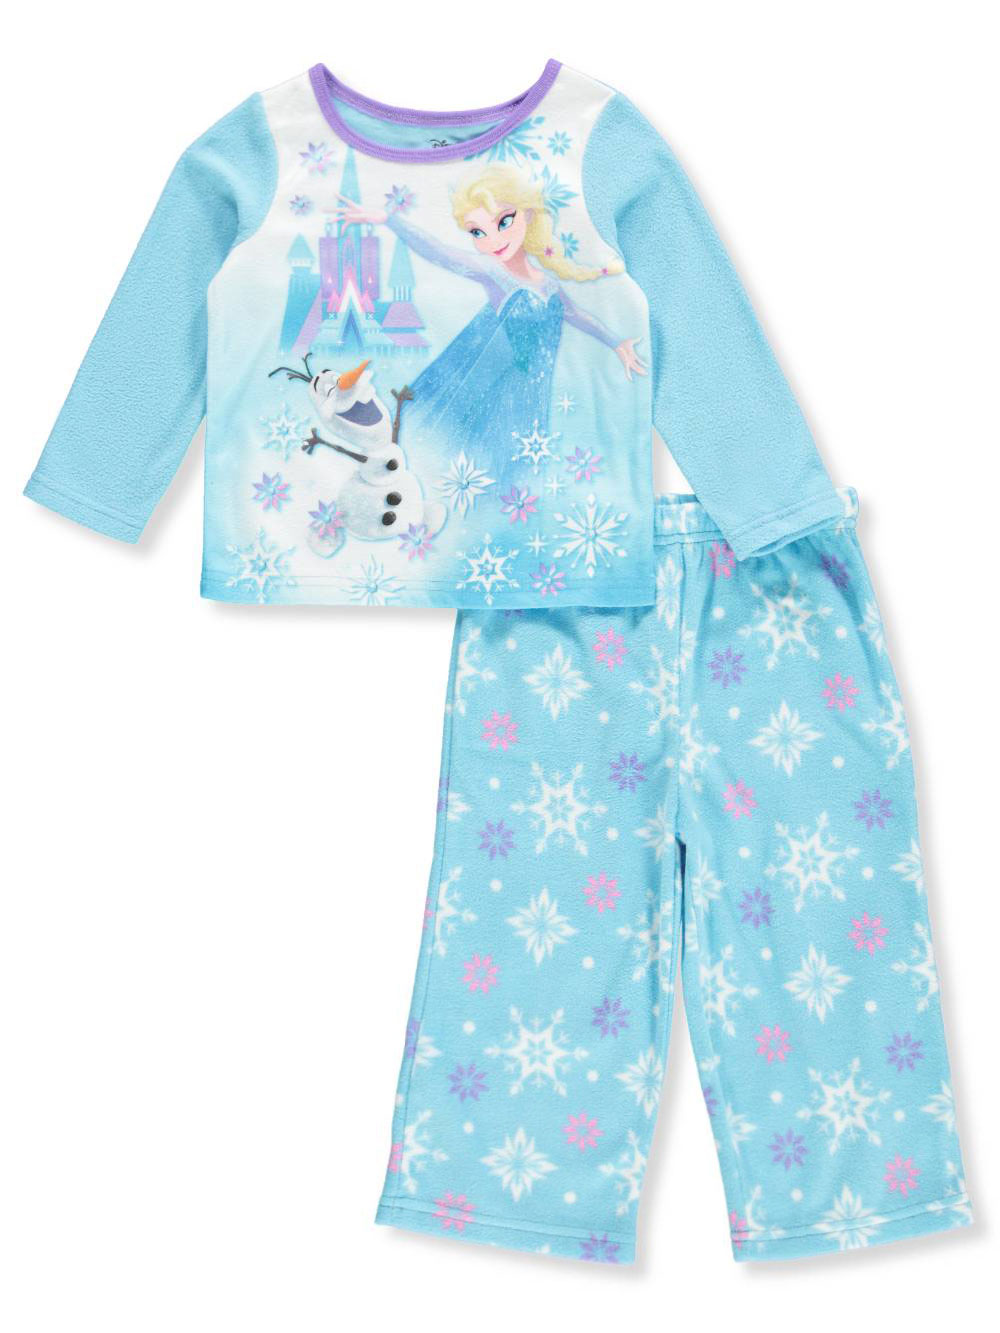 Disney Frozen Baby Girls' 2-Piece Pajamas Featuring Elsa & Olaf